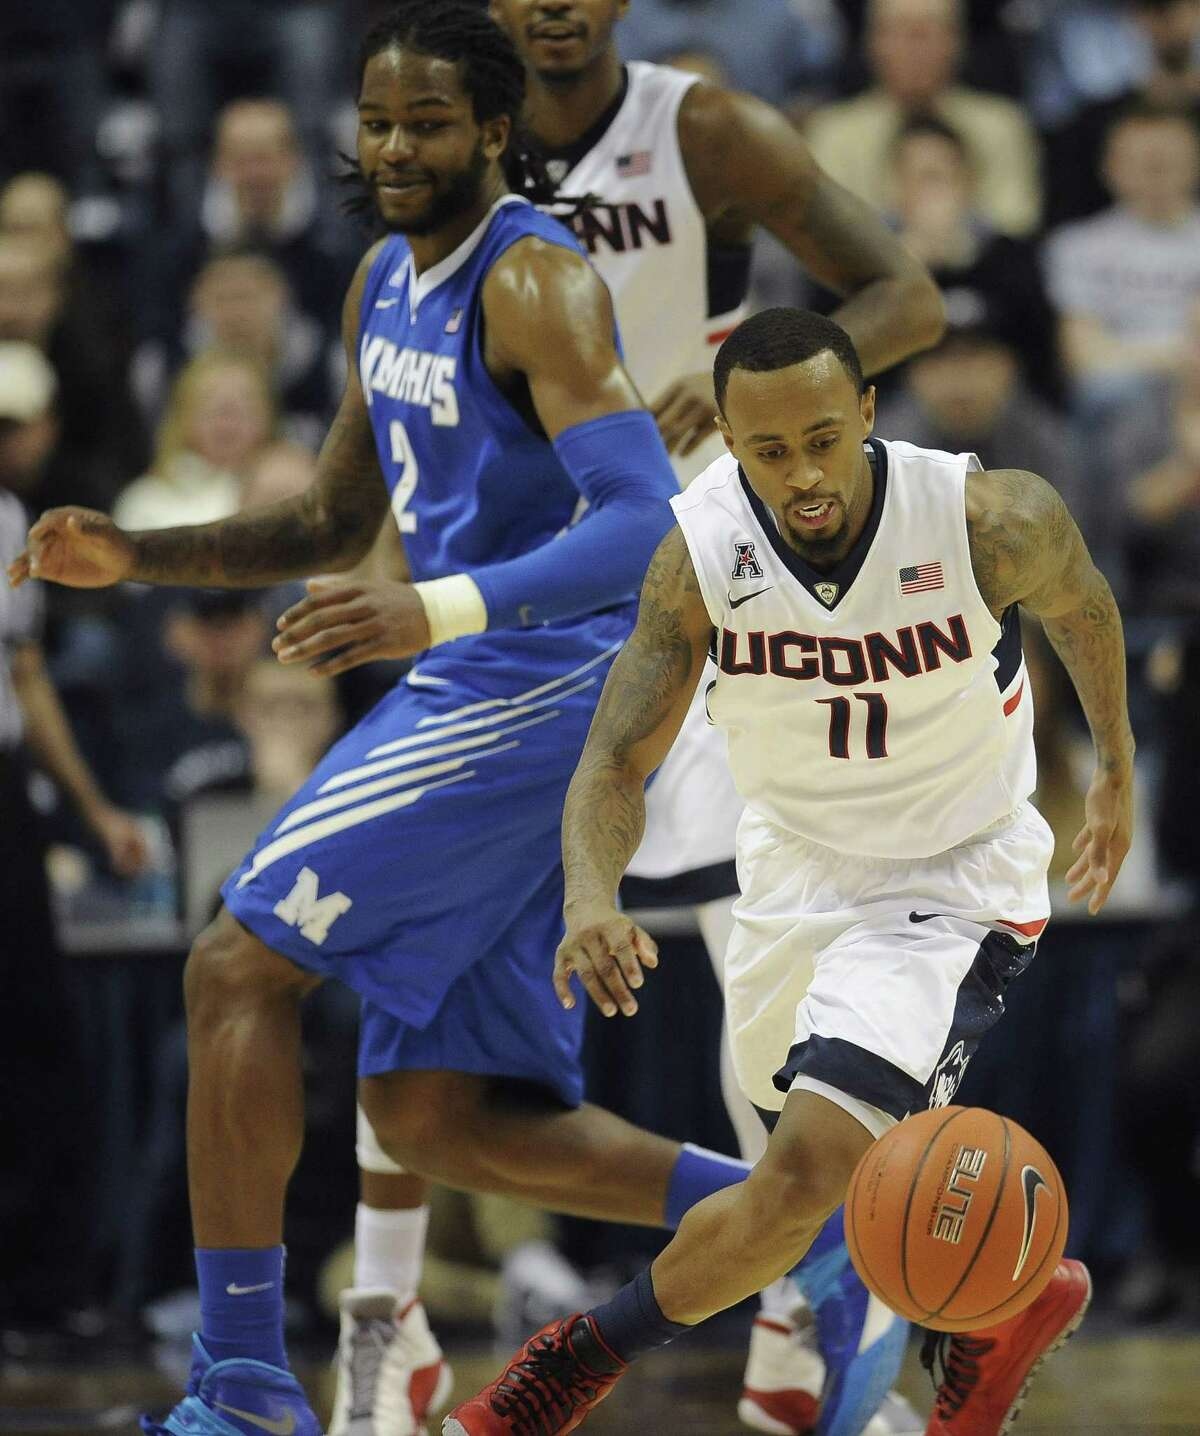 Jessica Hill — The Asociated Press UConn's Ryan Boatright, right, steals the ball from Memphis' Shaq Goodwin in Thursday's game.